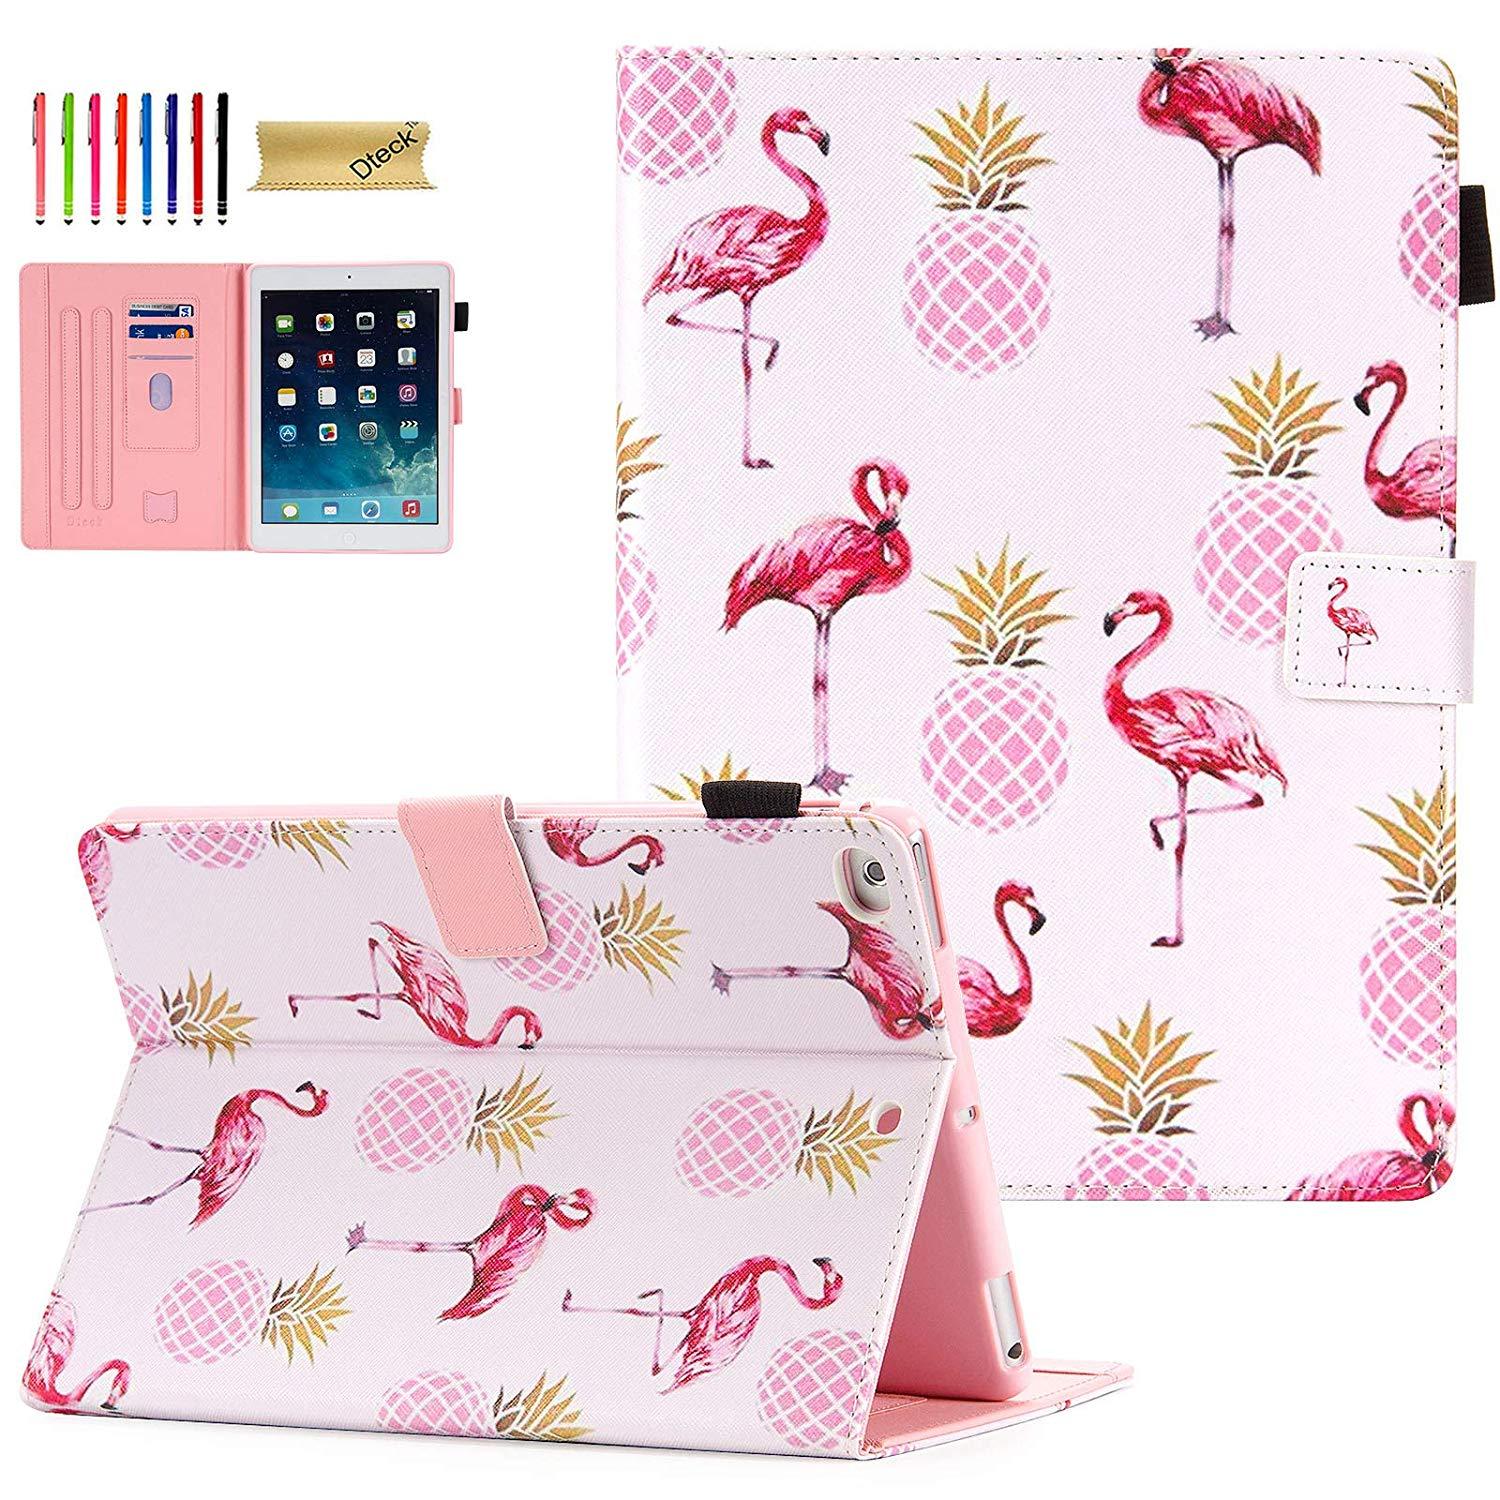 iPad Case And Pencil Holder